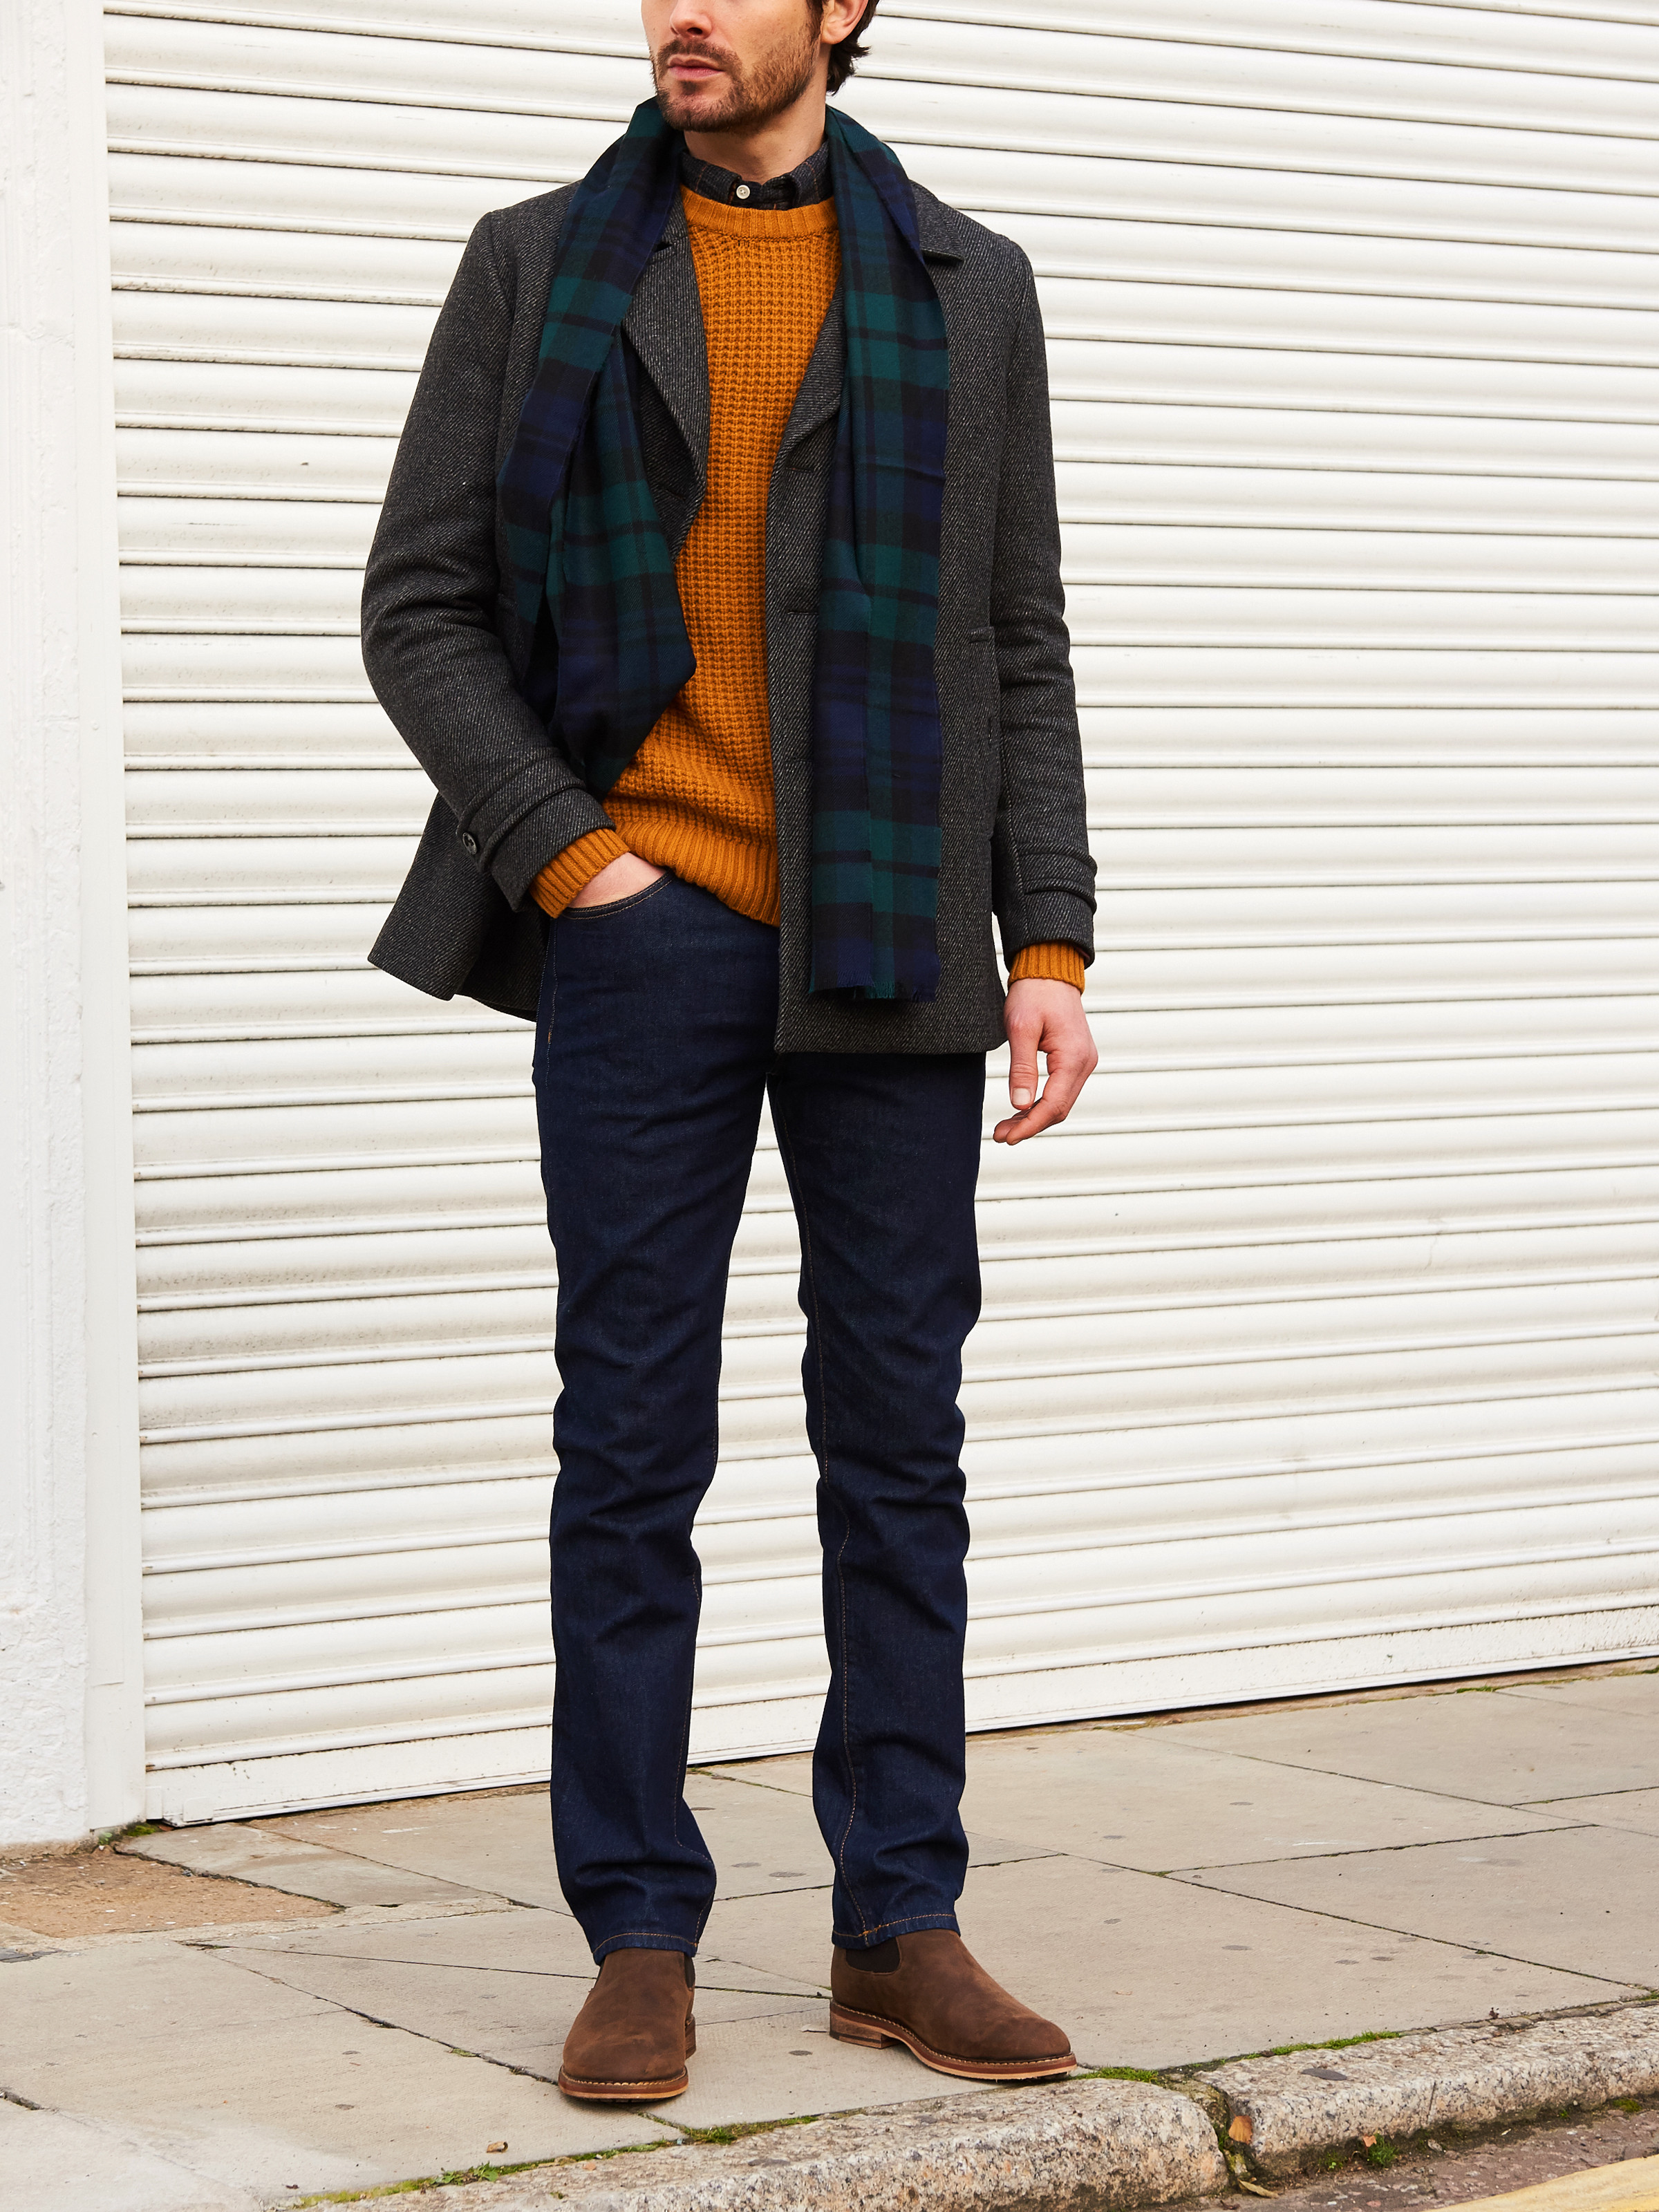 Men's outfit idea for 2021 with single-breasted overcoat, bold coloured crew neck jumper, neutral plaid shirt, dark blue jeans, patterned knitted scarf. Suitable for autumn and winter.